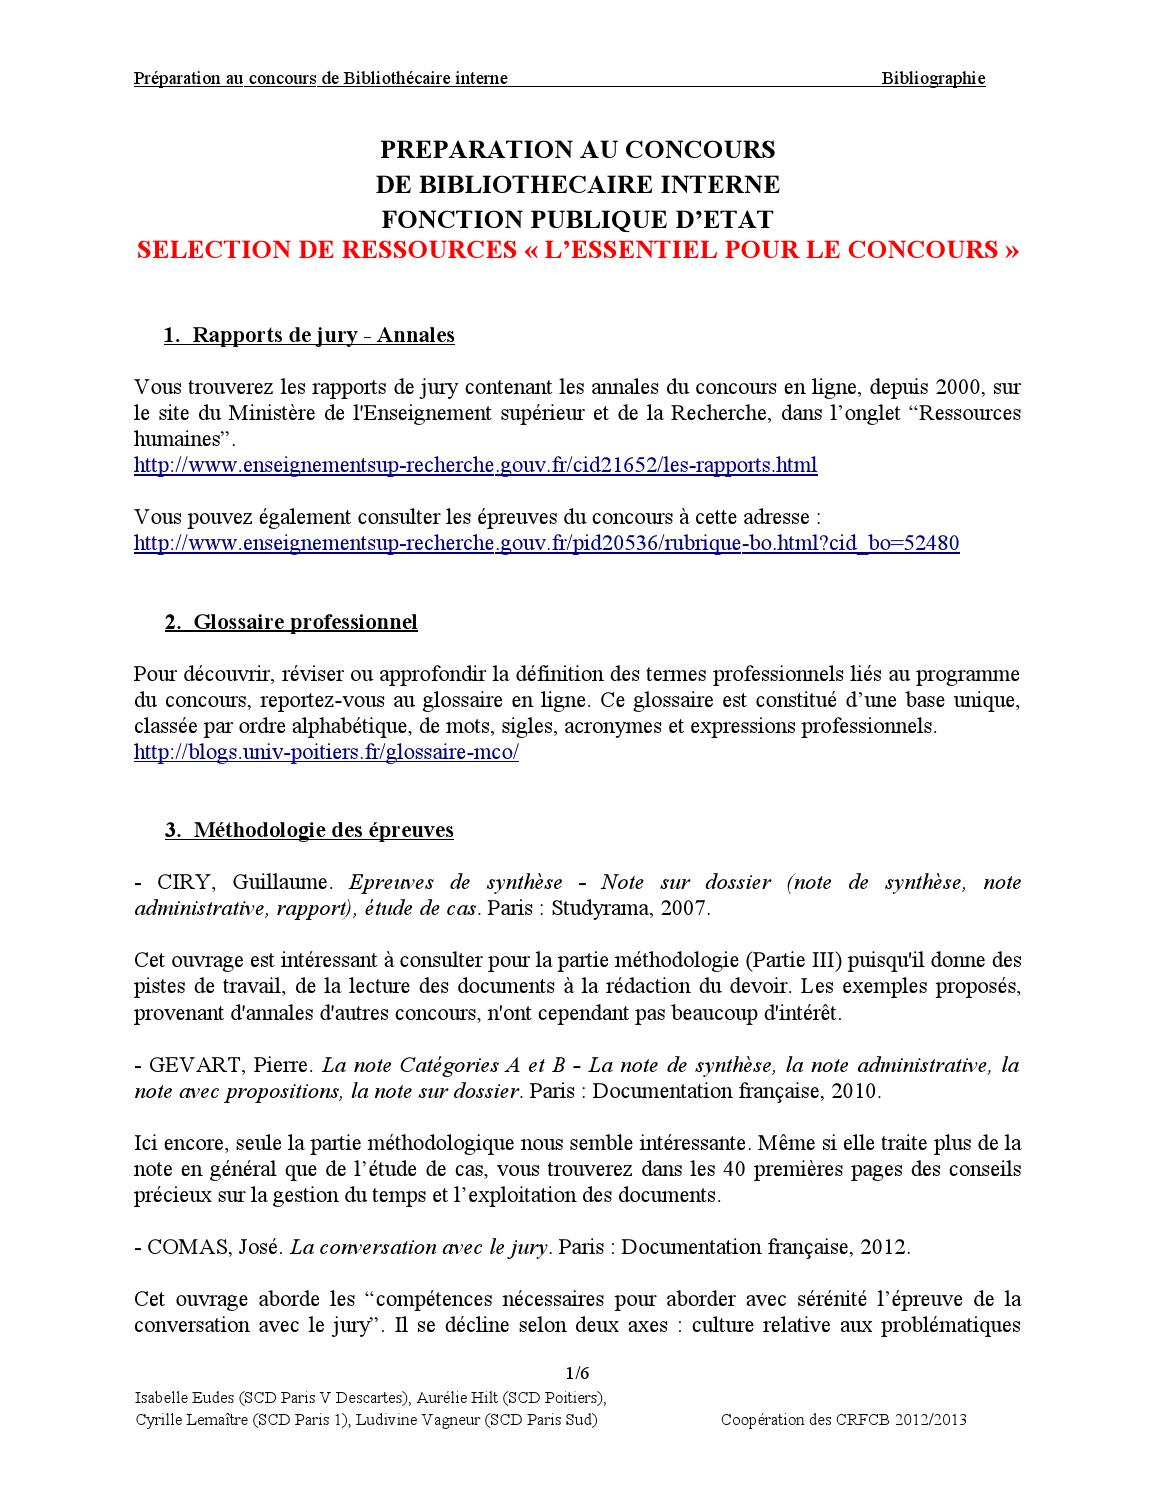 Exemple Note Administrative Avec Propositions : exemple, administrative, propositions, Bibinterne, Bibliographie, Olivier, Reivilo, Issuu